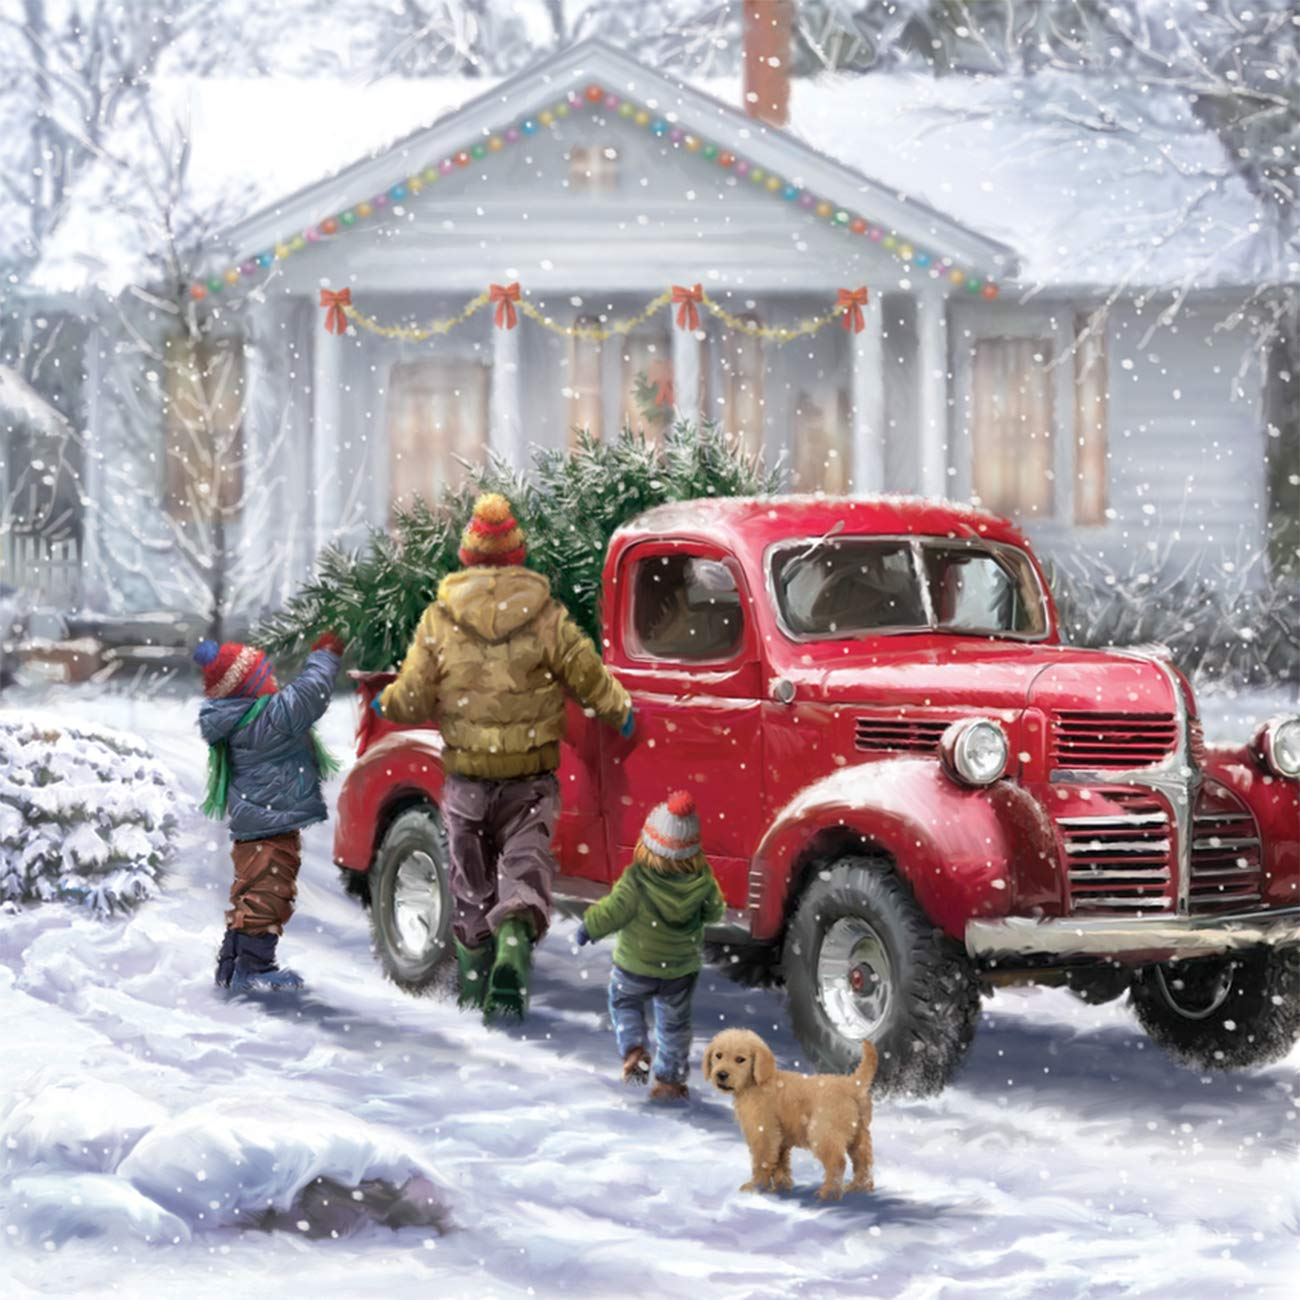 5d Diamond Painting The Christmas Tree Truck And The Dog Full Drill By Number Kits Skryuie Diy Rhinestone Pasted Paint With Diamond Set Arts Craft Decorations 14x14inch